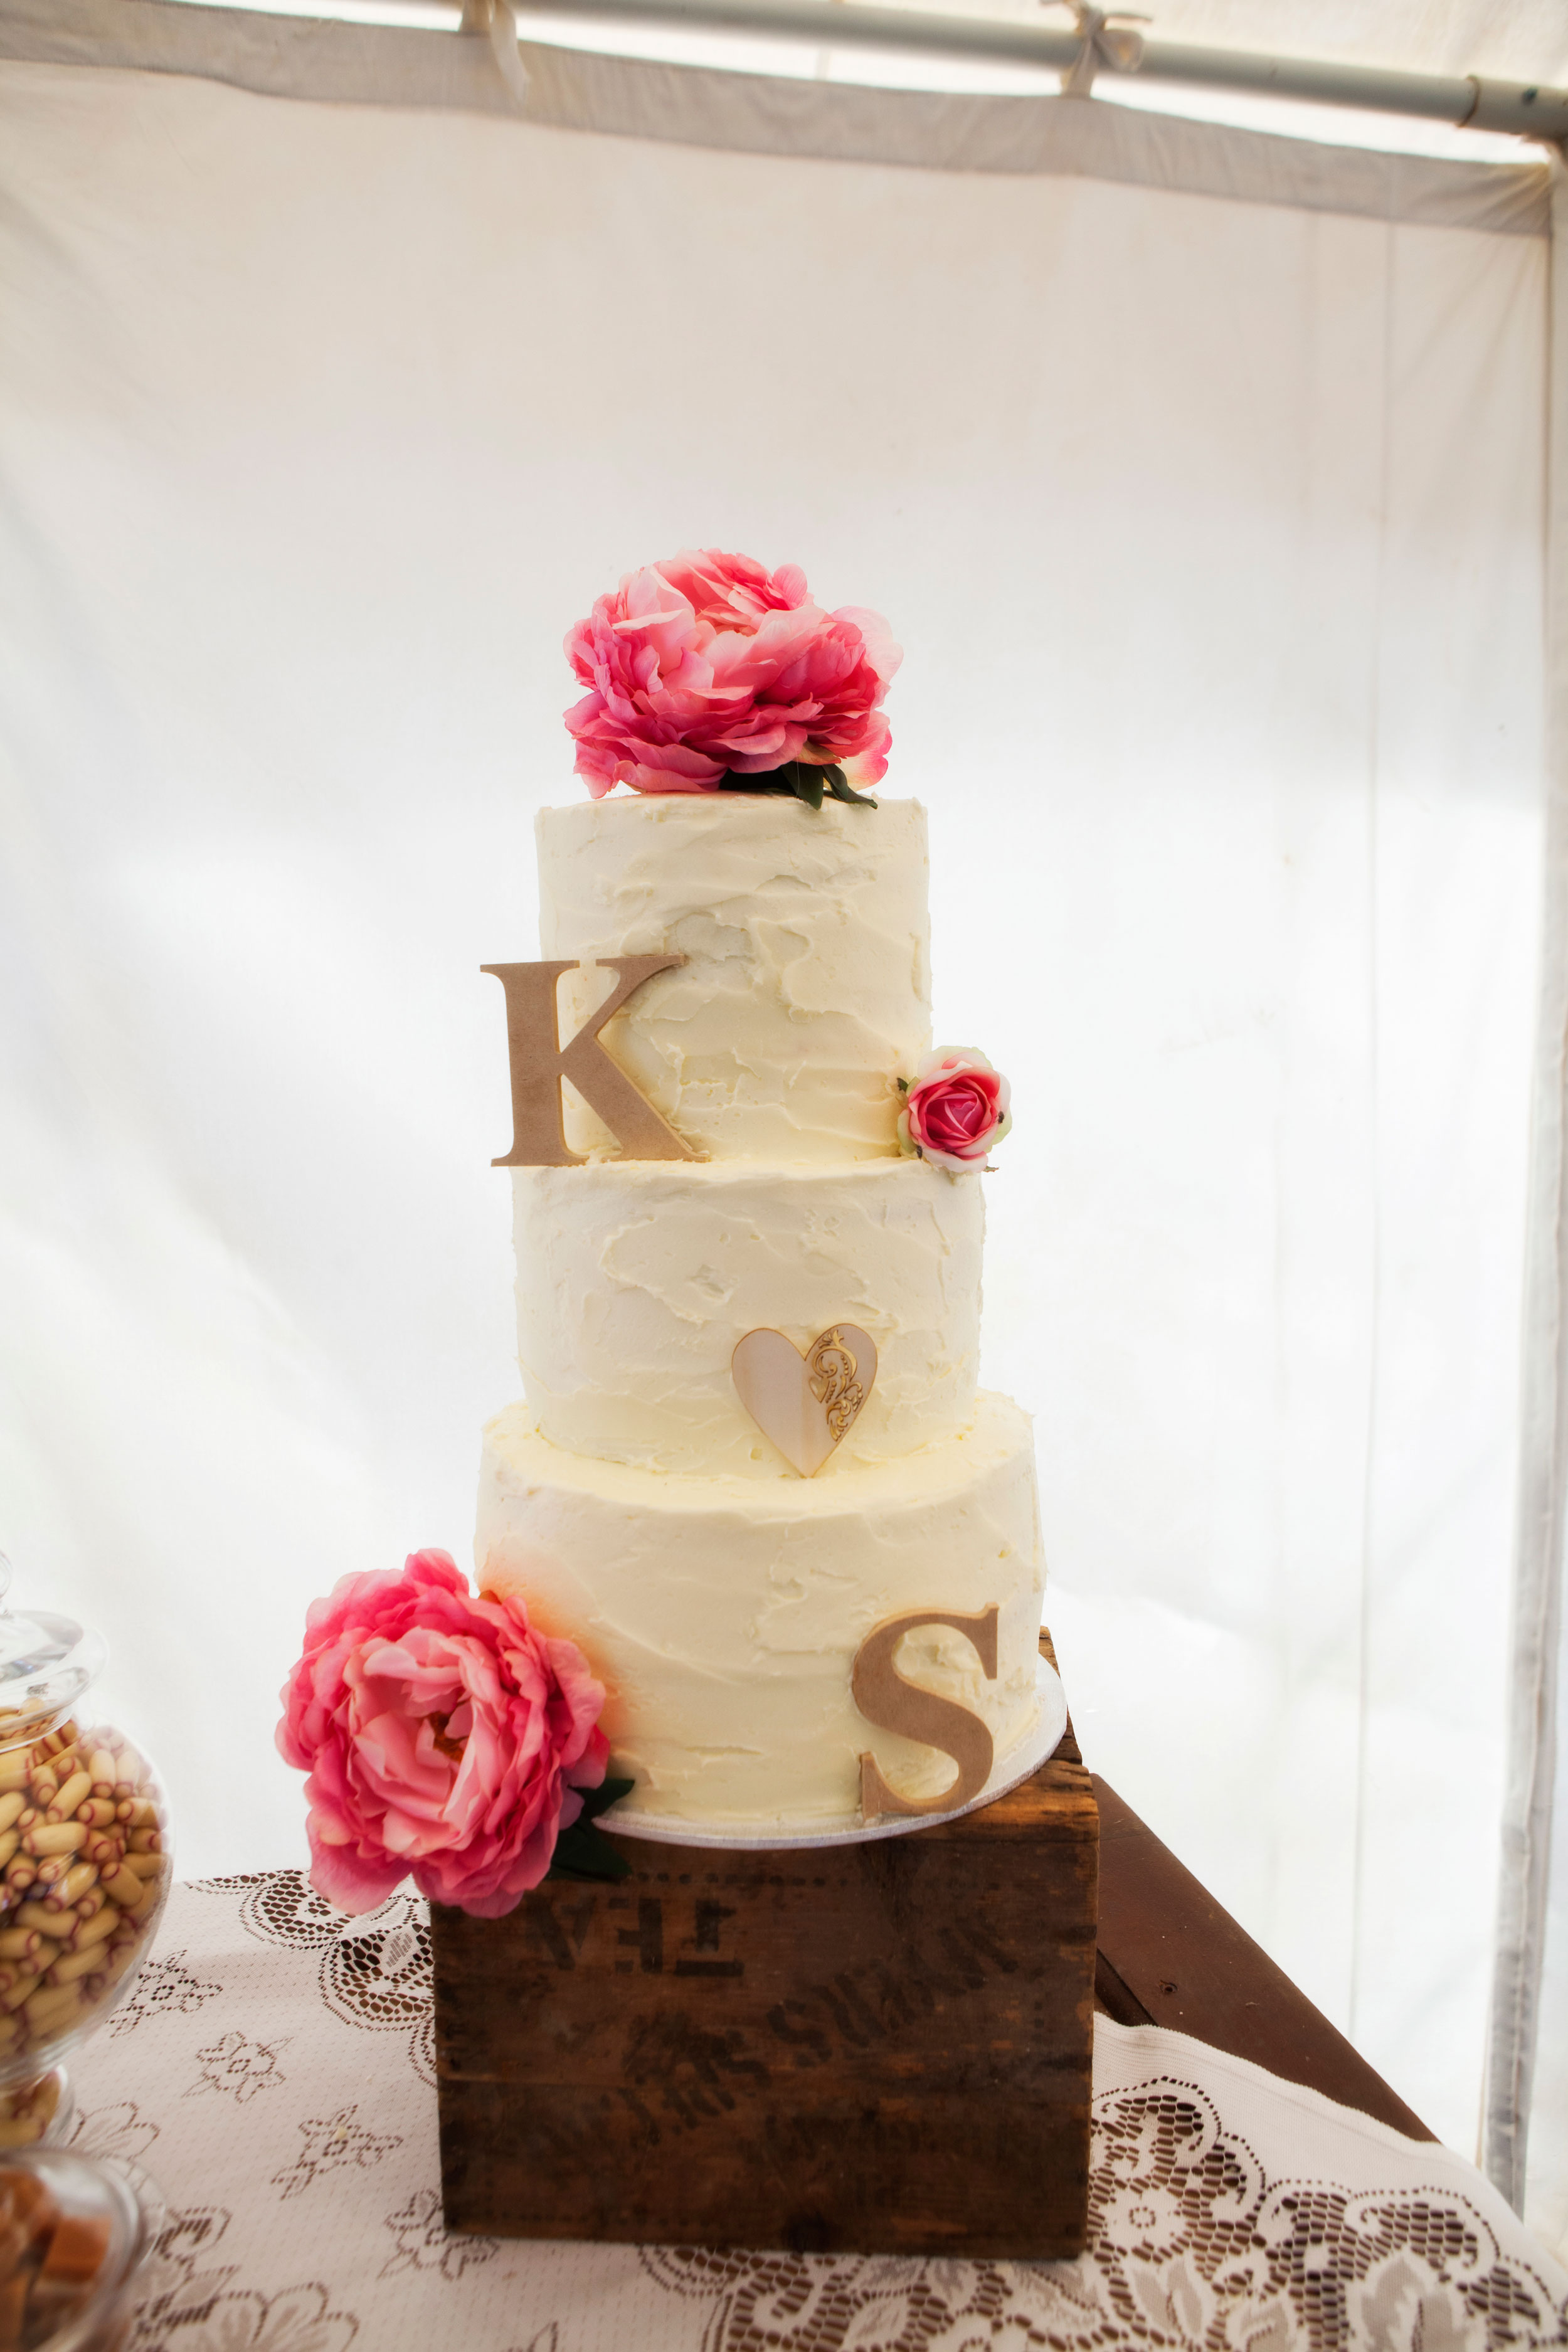 Creative cake toppers | Bride & Groom